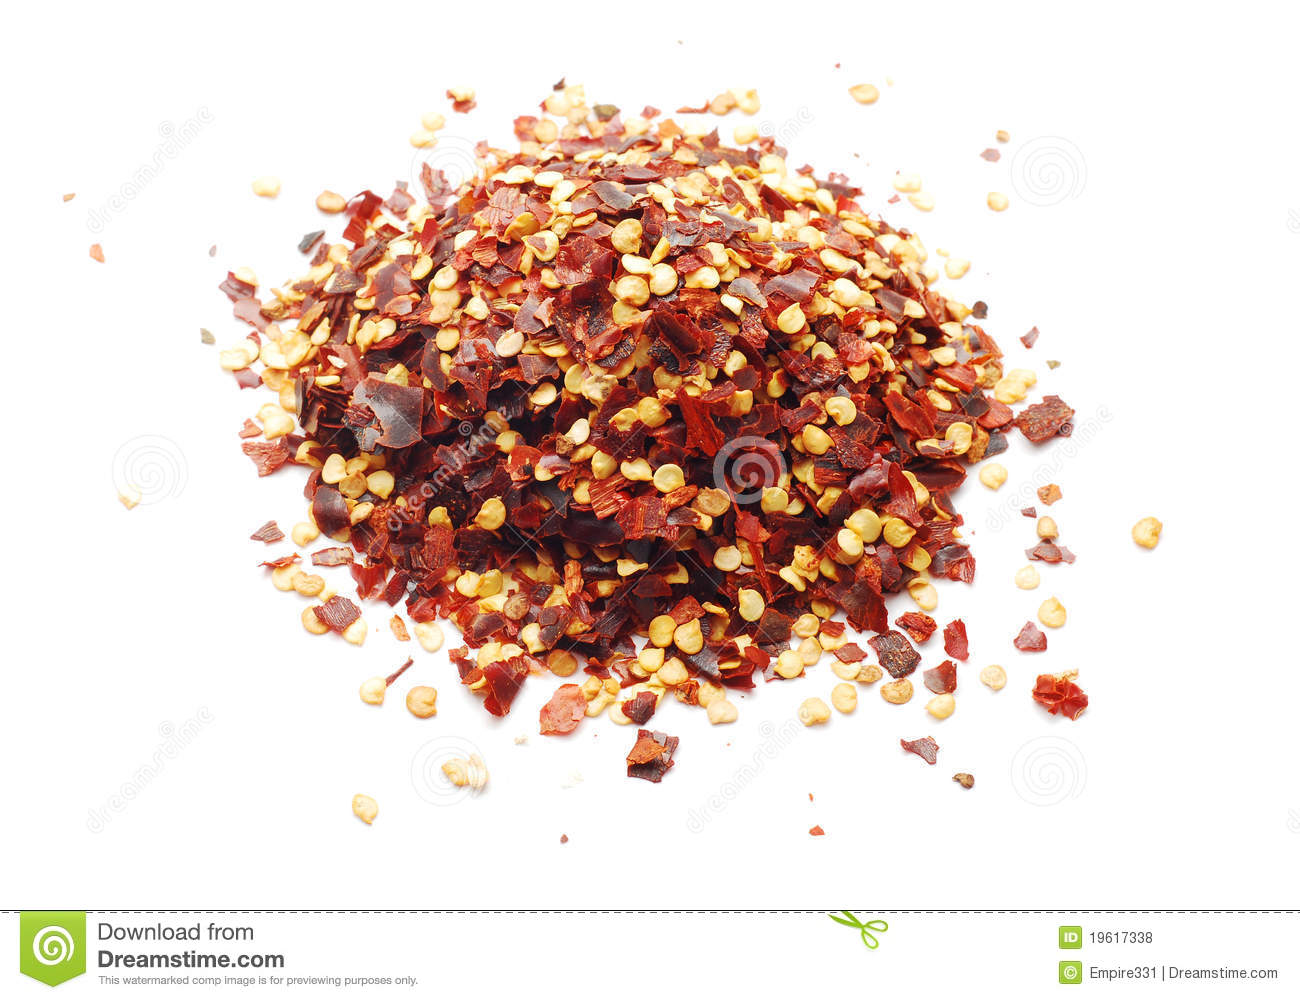 Chili flakes royalty free stock photos image 19617338 for Chili flakes